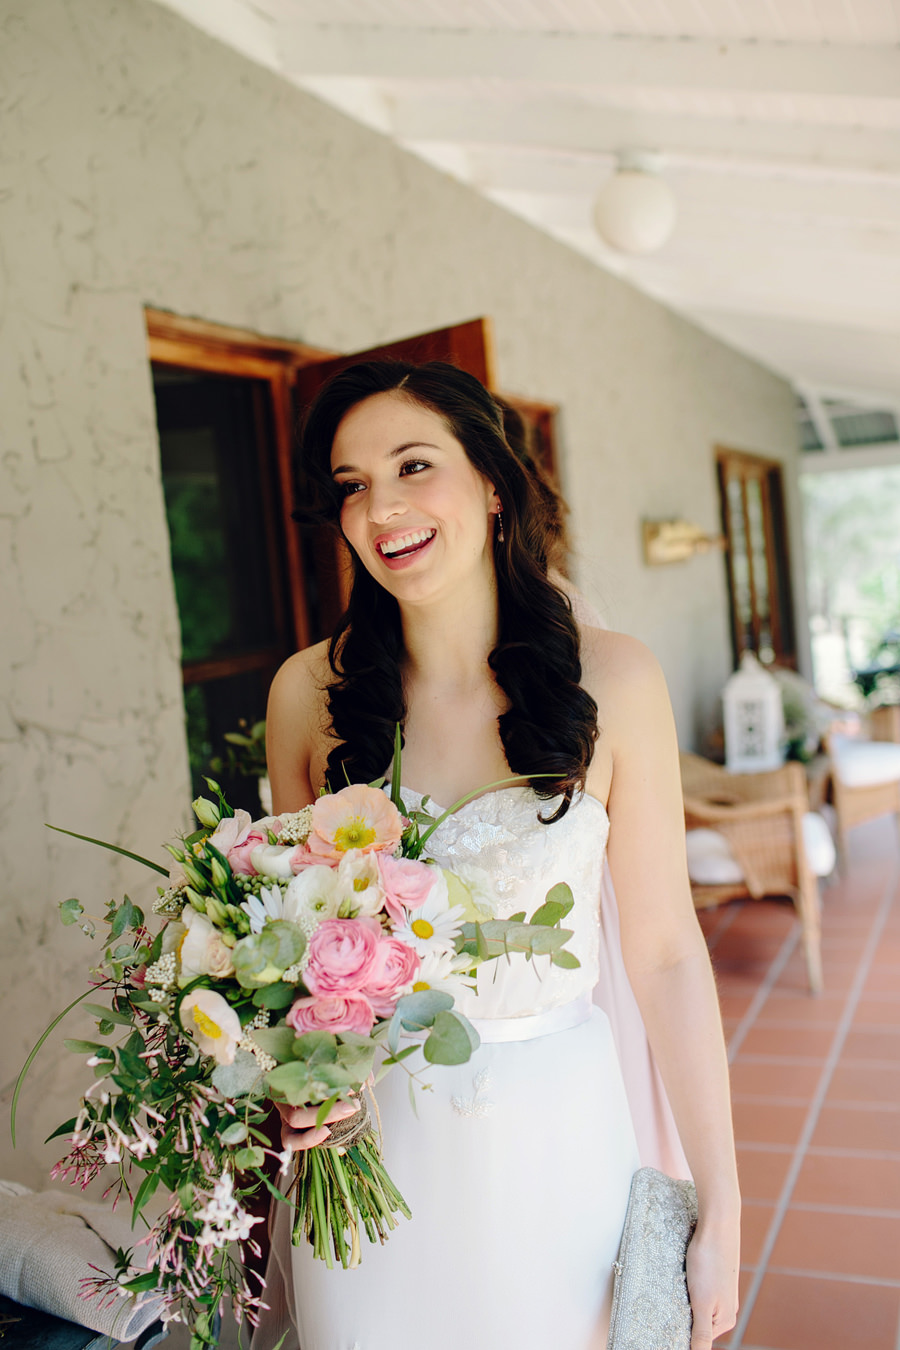 Hunter Valley Wedding Photography: Bride leaving for ceremony